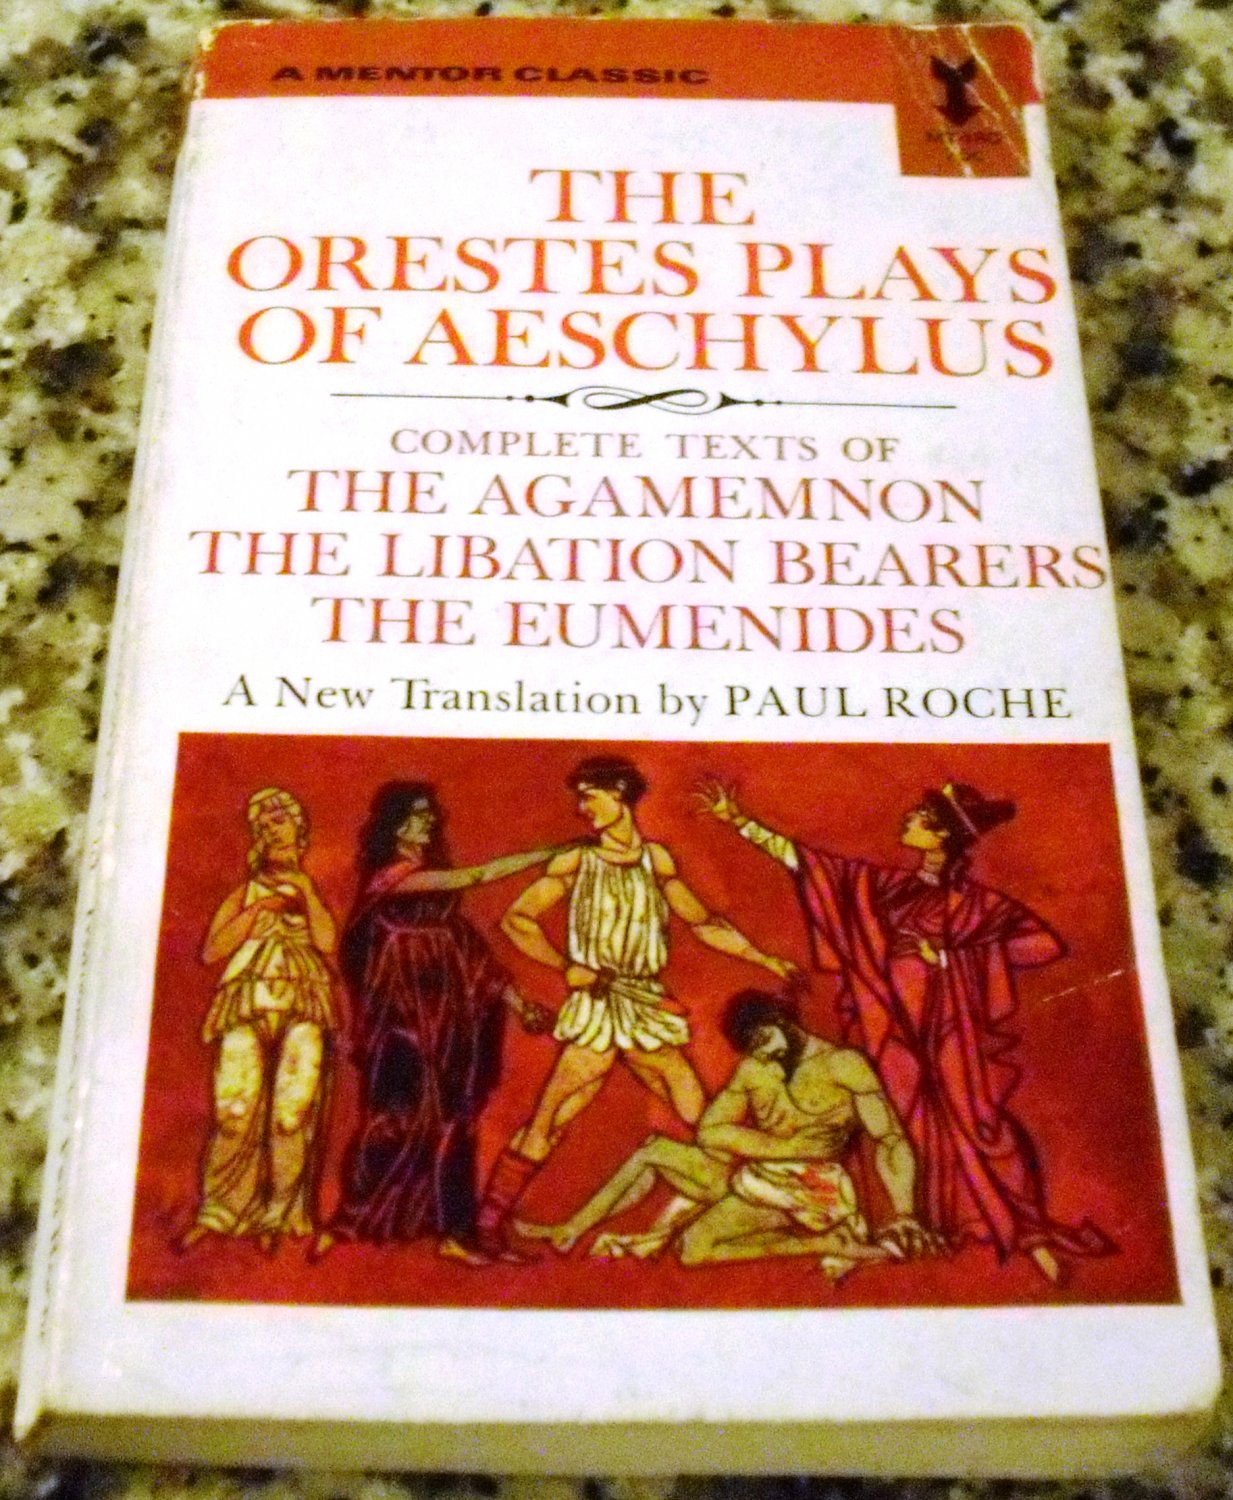 an analysis of the play agamemnon by aeschylus Analysis of aeschylus agamemnon characters- the watchman clytaemnestra the herald agamemnon cassandra aegisthus the chorus 1) the watchman: • the watchman sets the time and place for the.